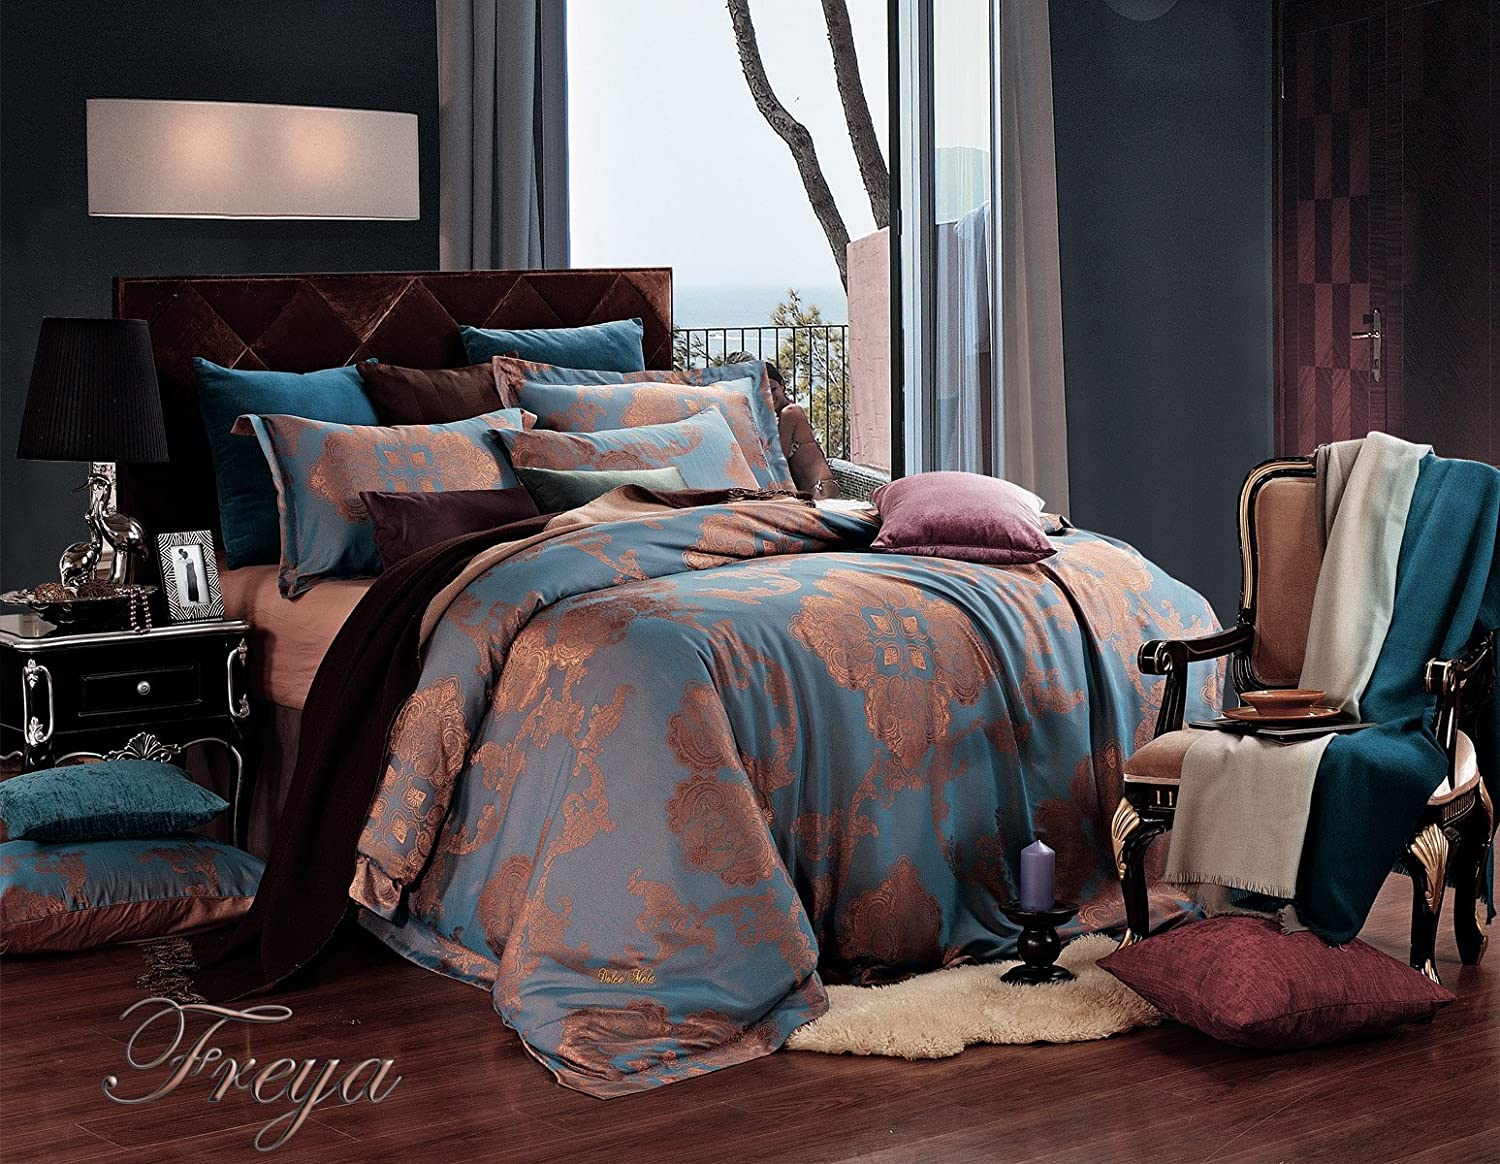 Jacquard Damask Luxury Bedding Duvet Covet Set, King